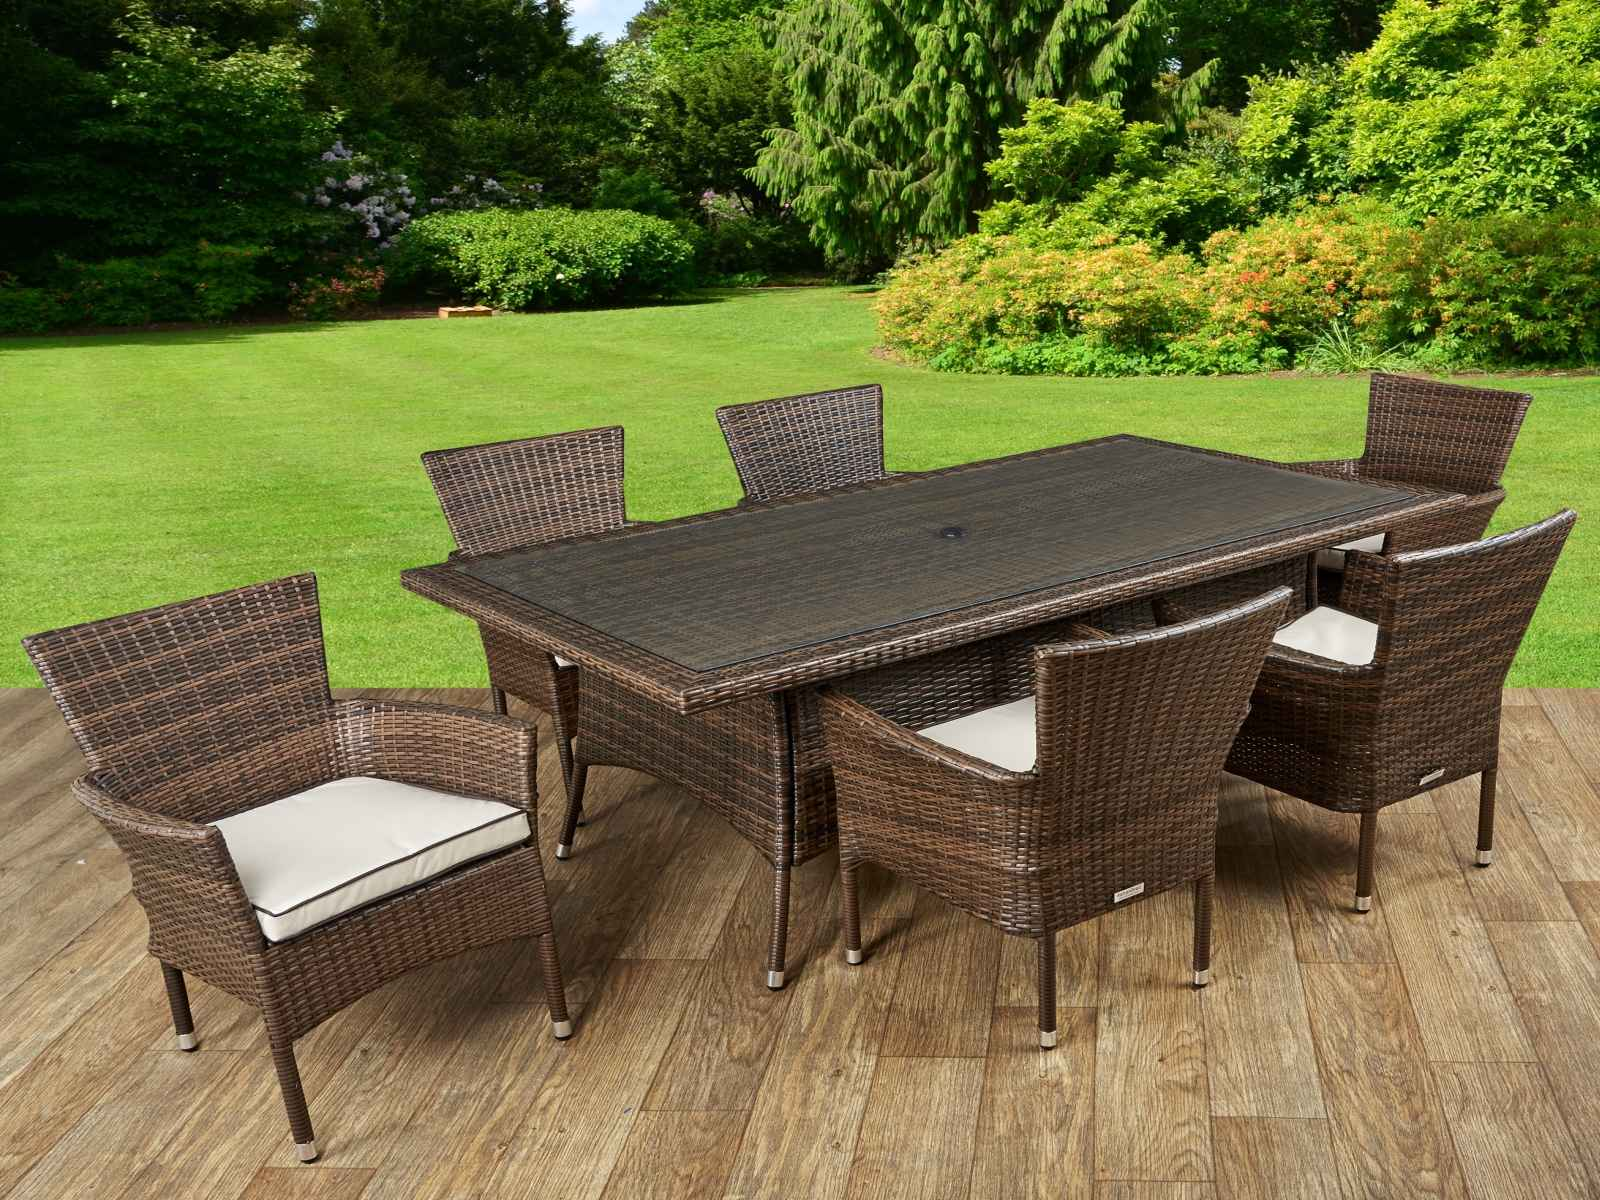 Cambridge 6 Rattan Garden Chairs and Rectangular Table Set in Chocolate and  Cream. Rattan Furniture Shop UK   Buy Online from Rattan Direct